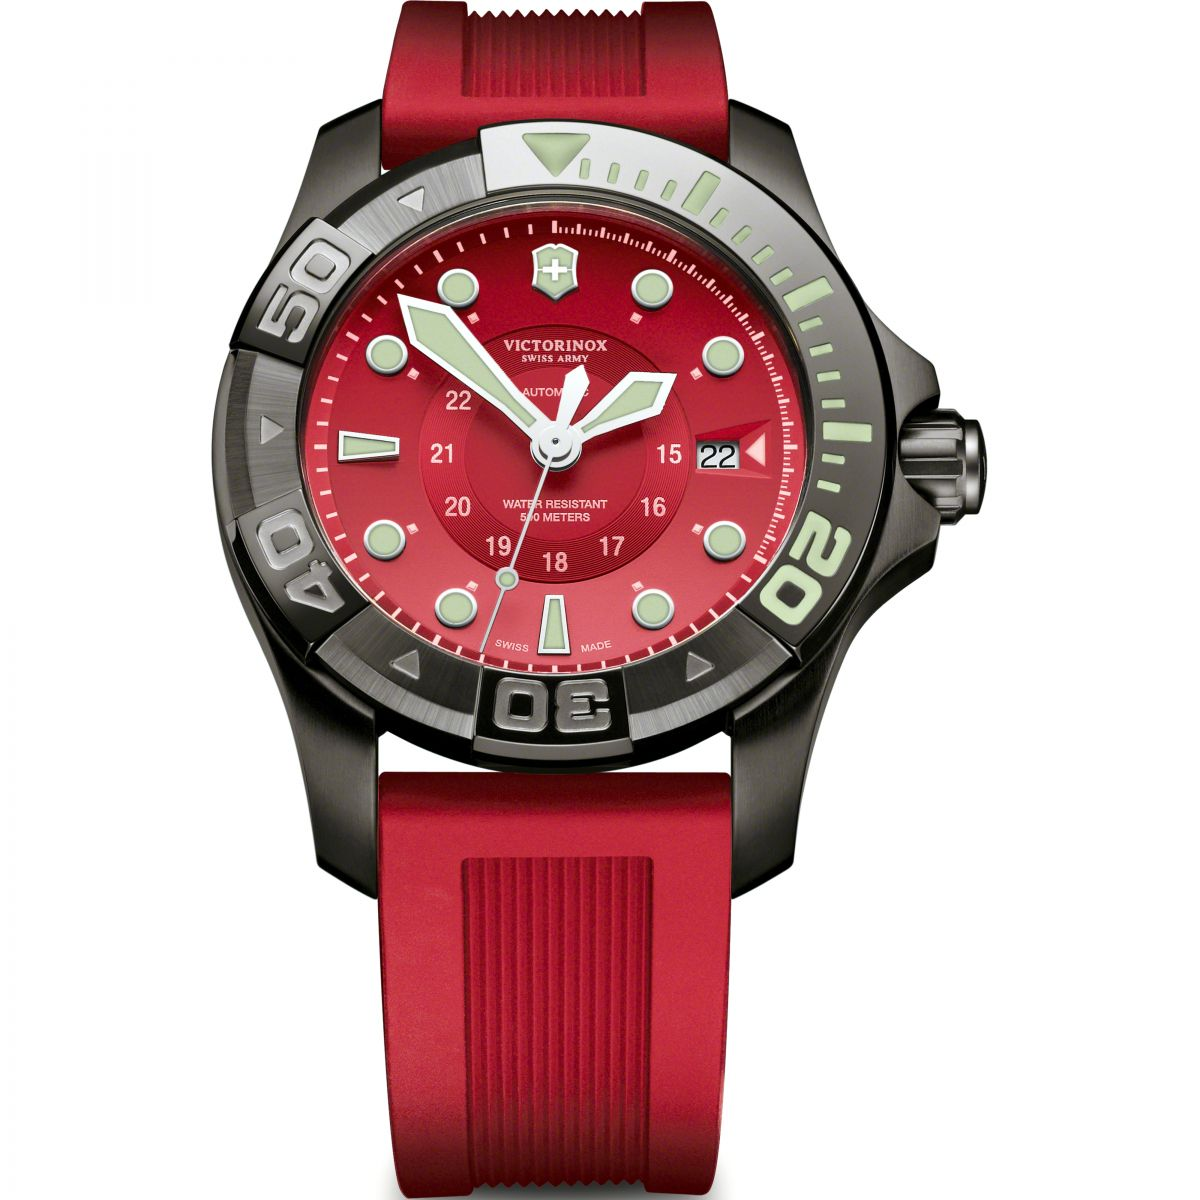 swiss dive model s divemaster watches zm master men watch army